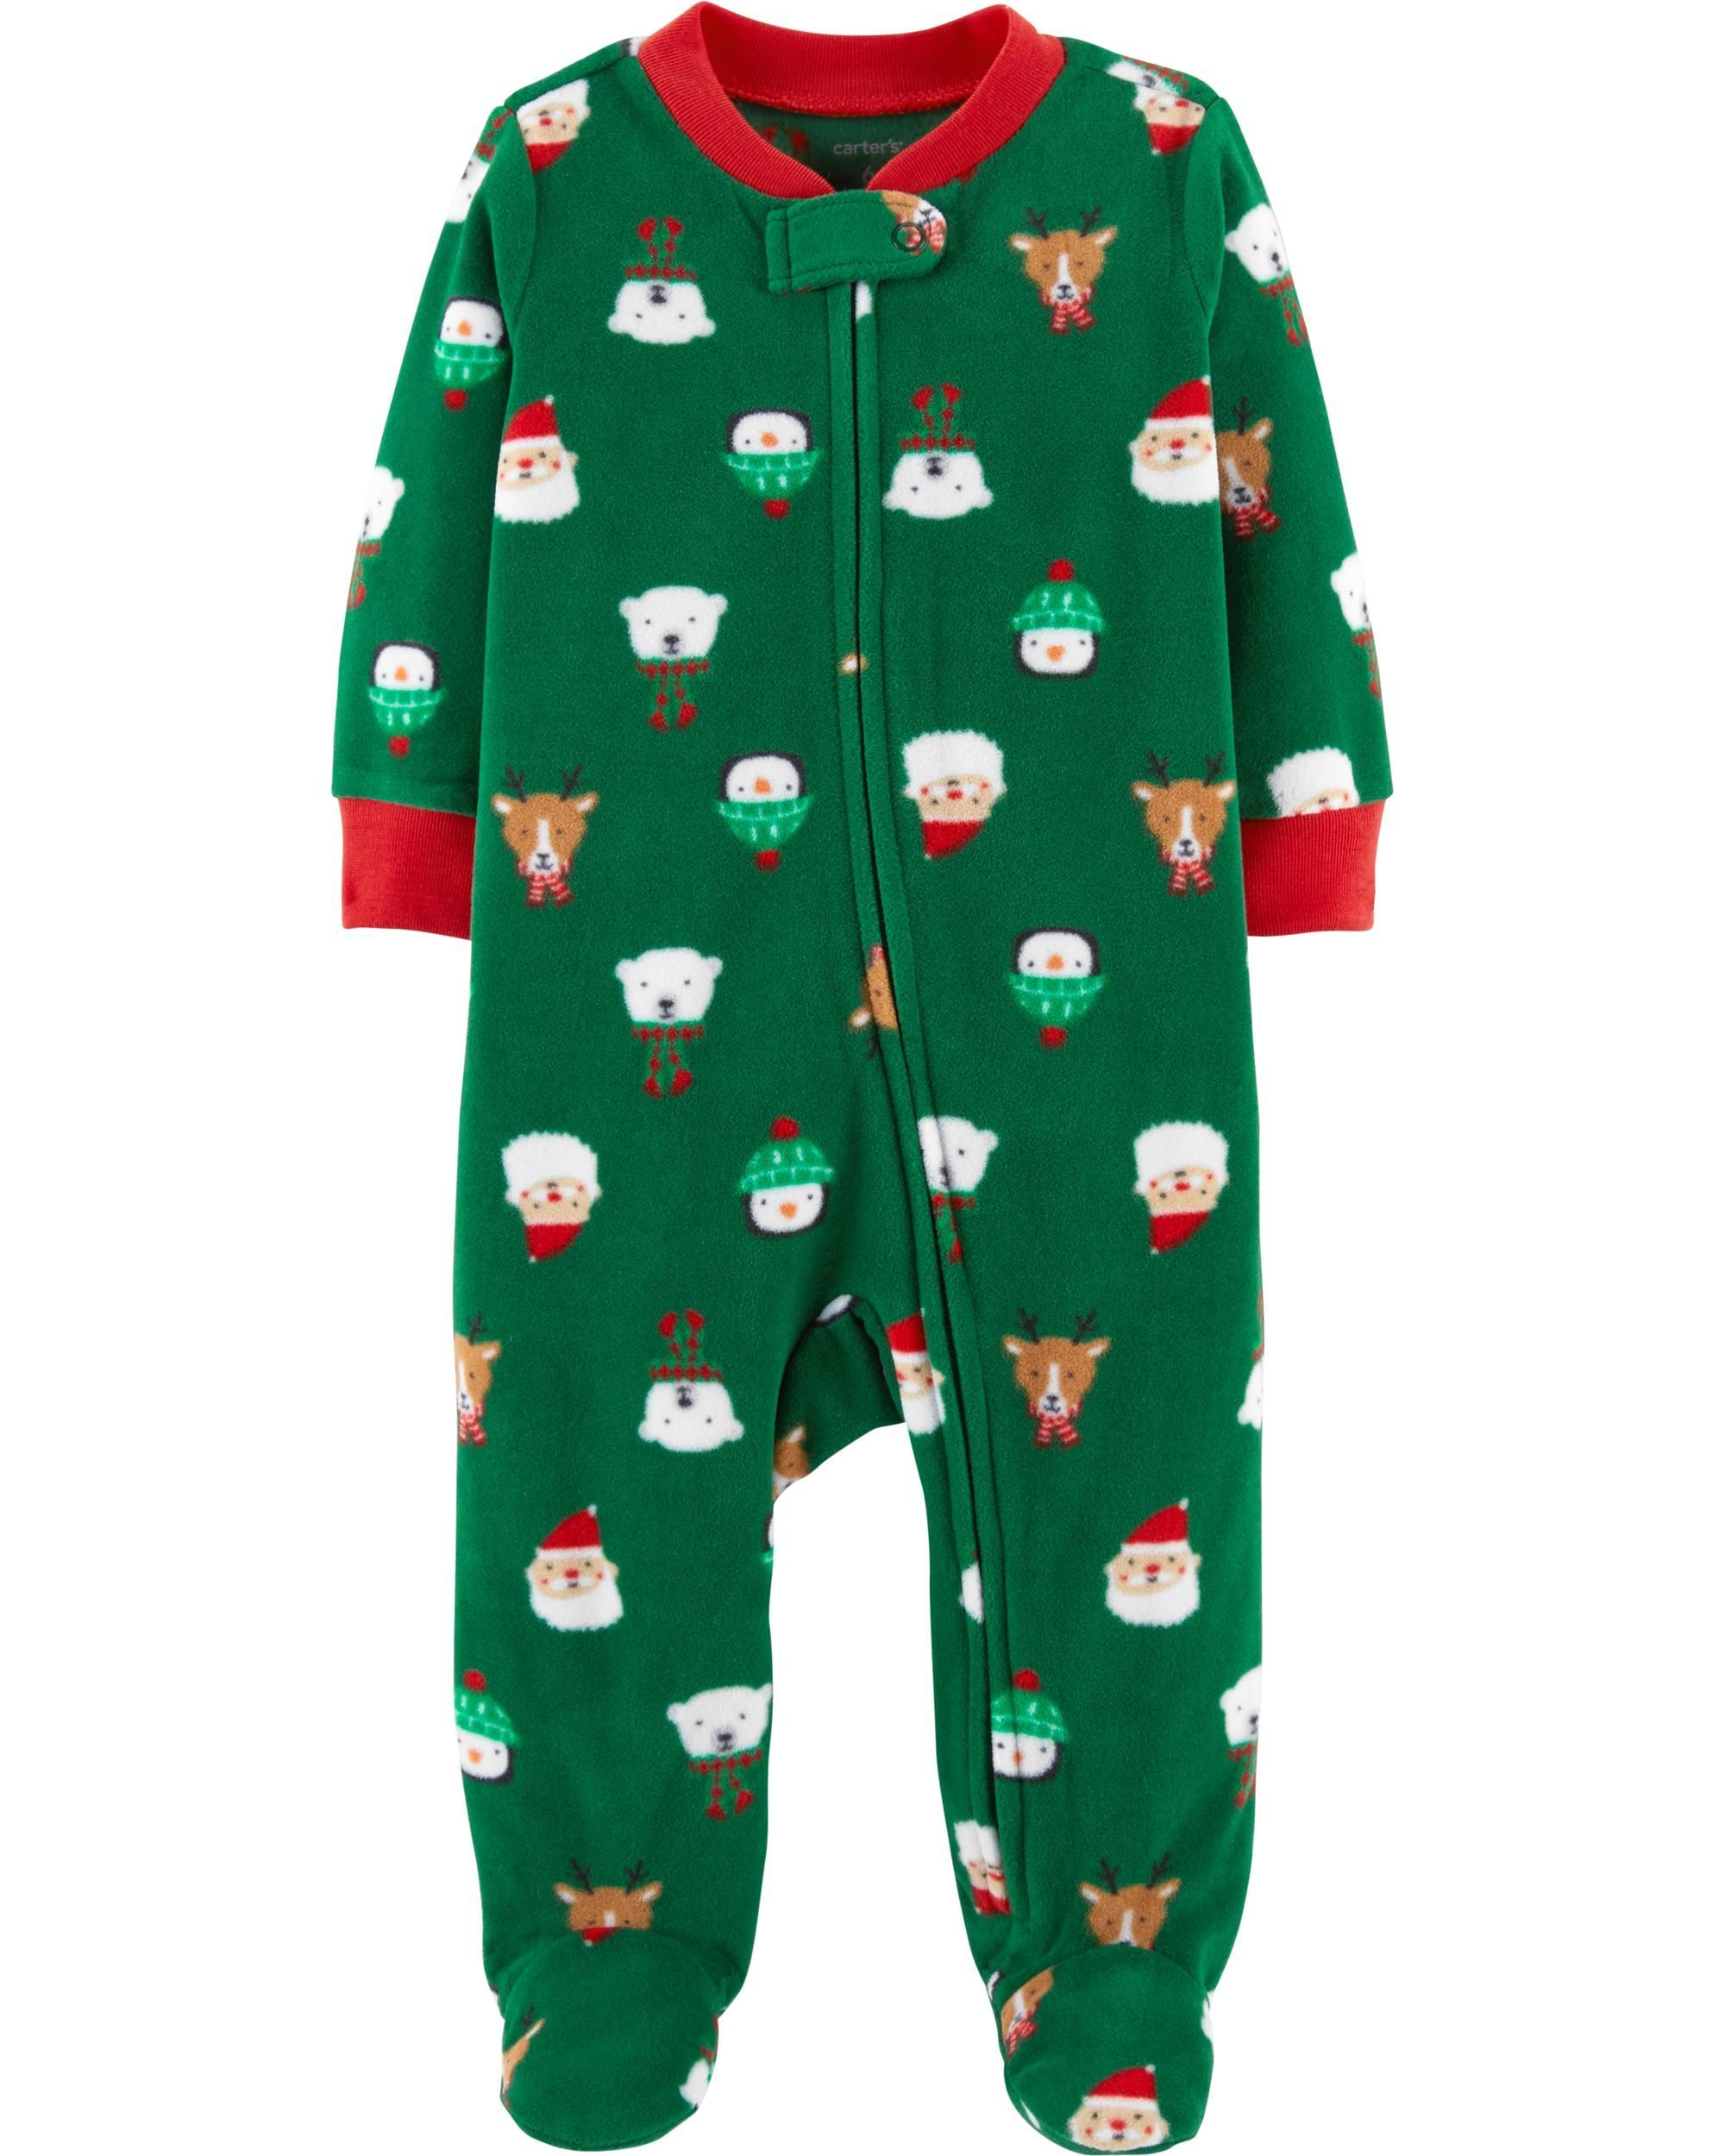 4163f4498 Christmas Zip-Up Fleece Sleep   Play